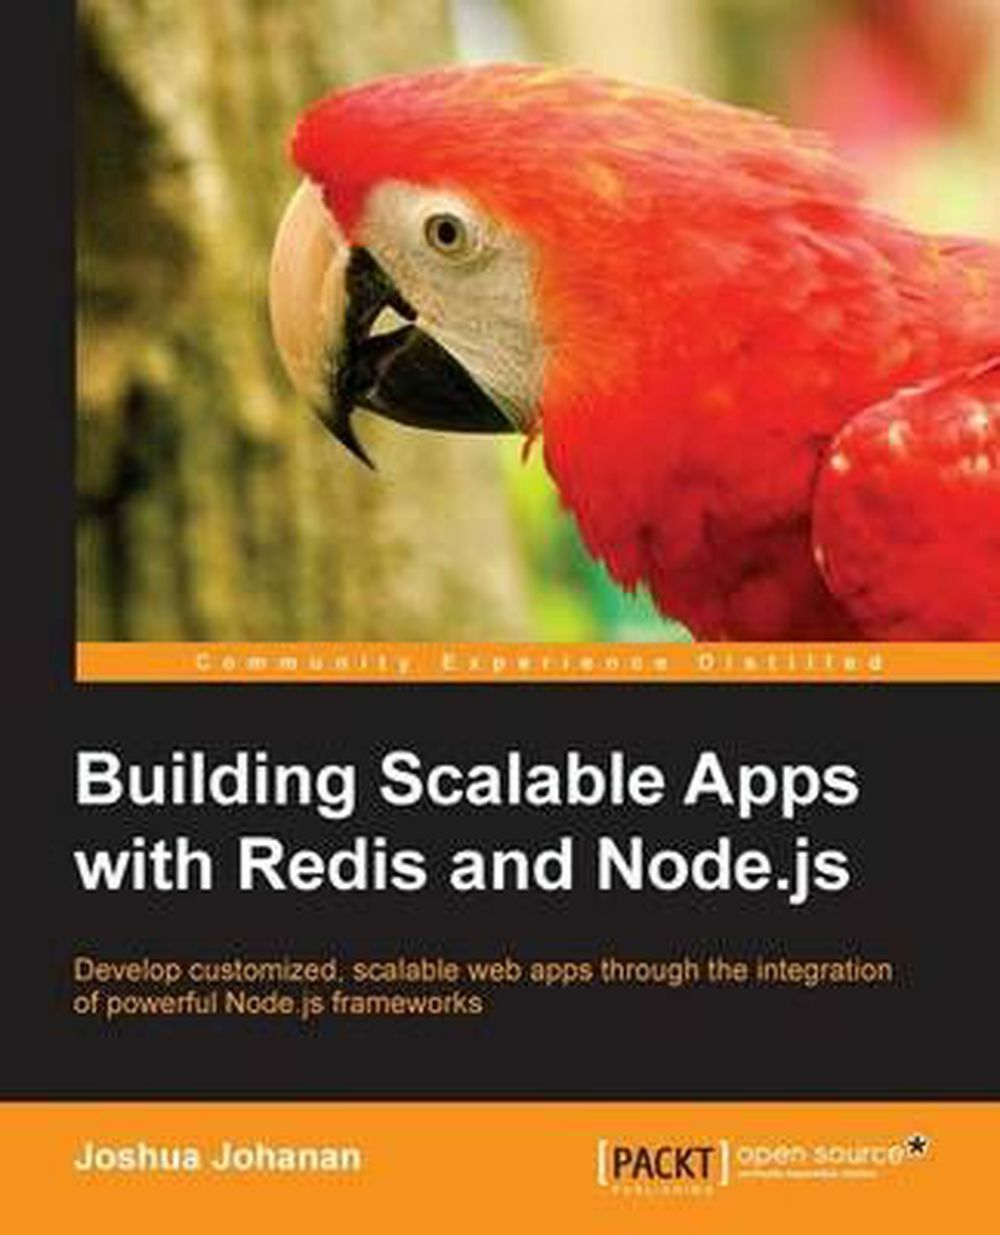 Building Scalable Apps with Redis and Node.Js by Joshua Johanan |